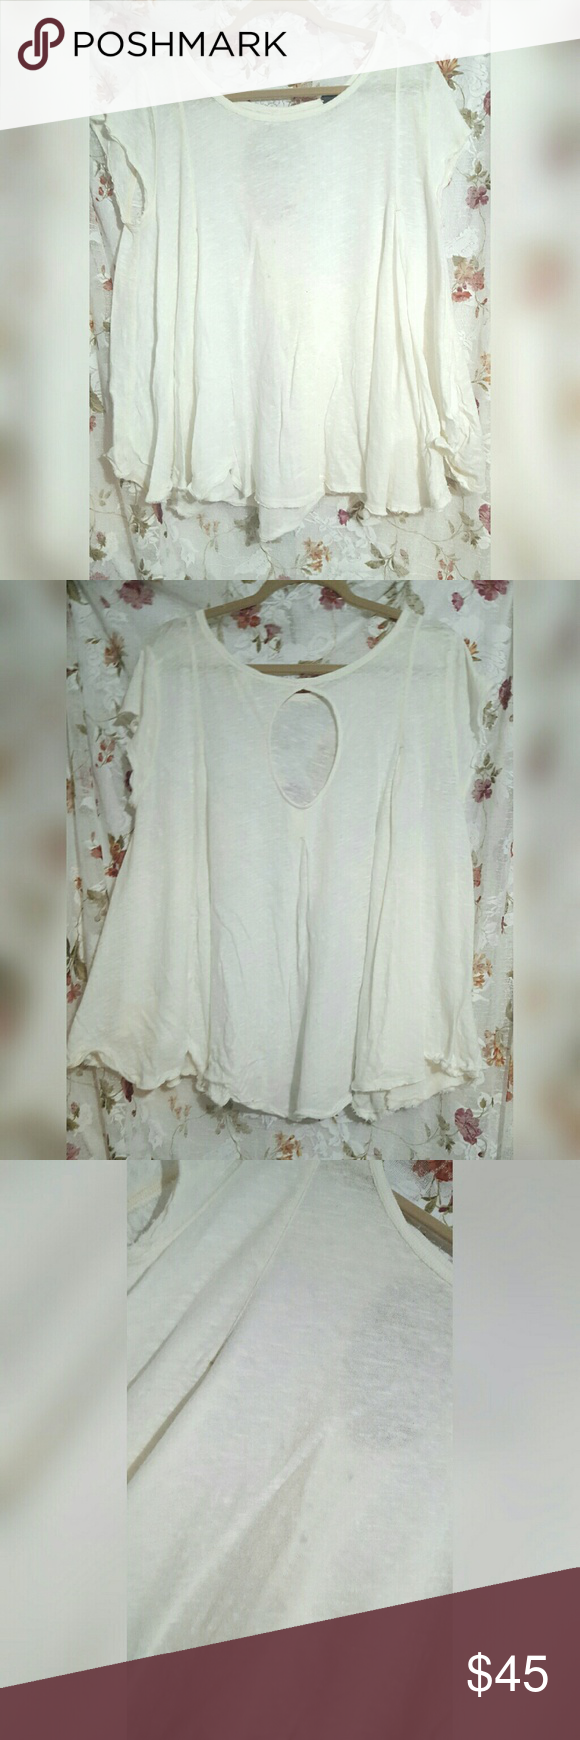 We The Free Boho White Top Great condition,  just a few stains on front (shown in photo) but they are not very noticeable. No size shown but looks like a loose fit large. Free People Tops